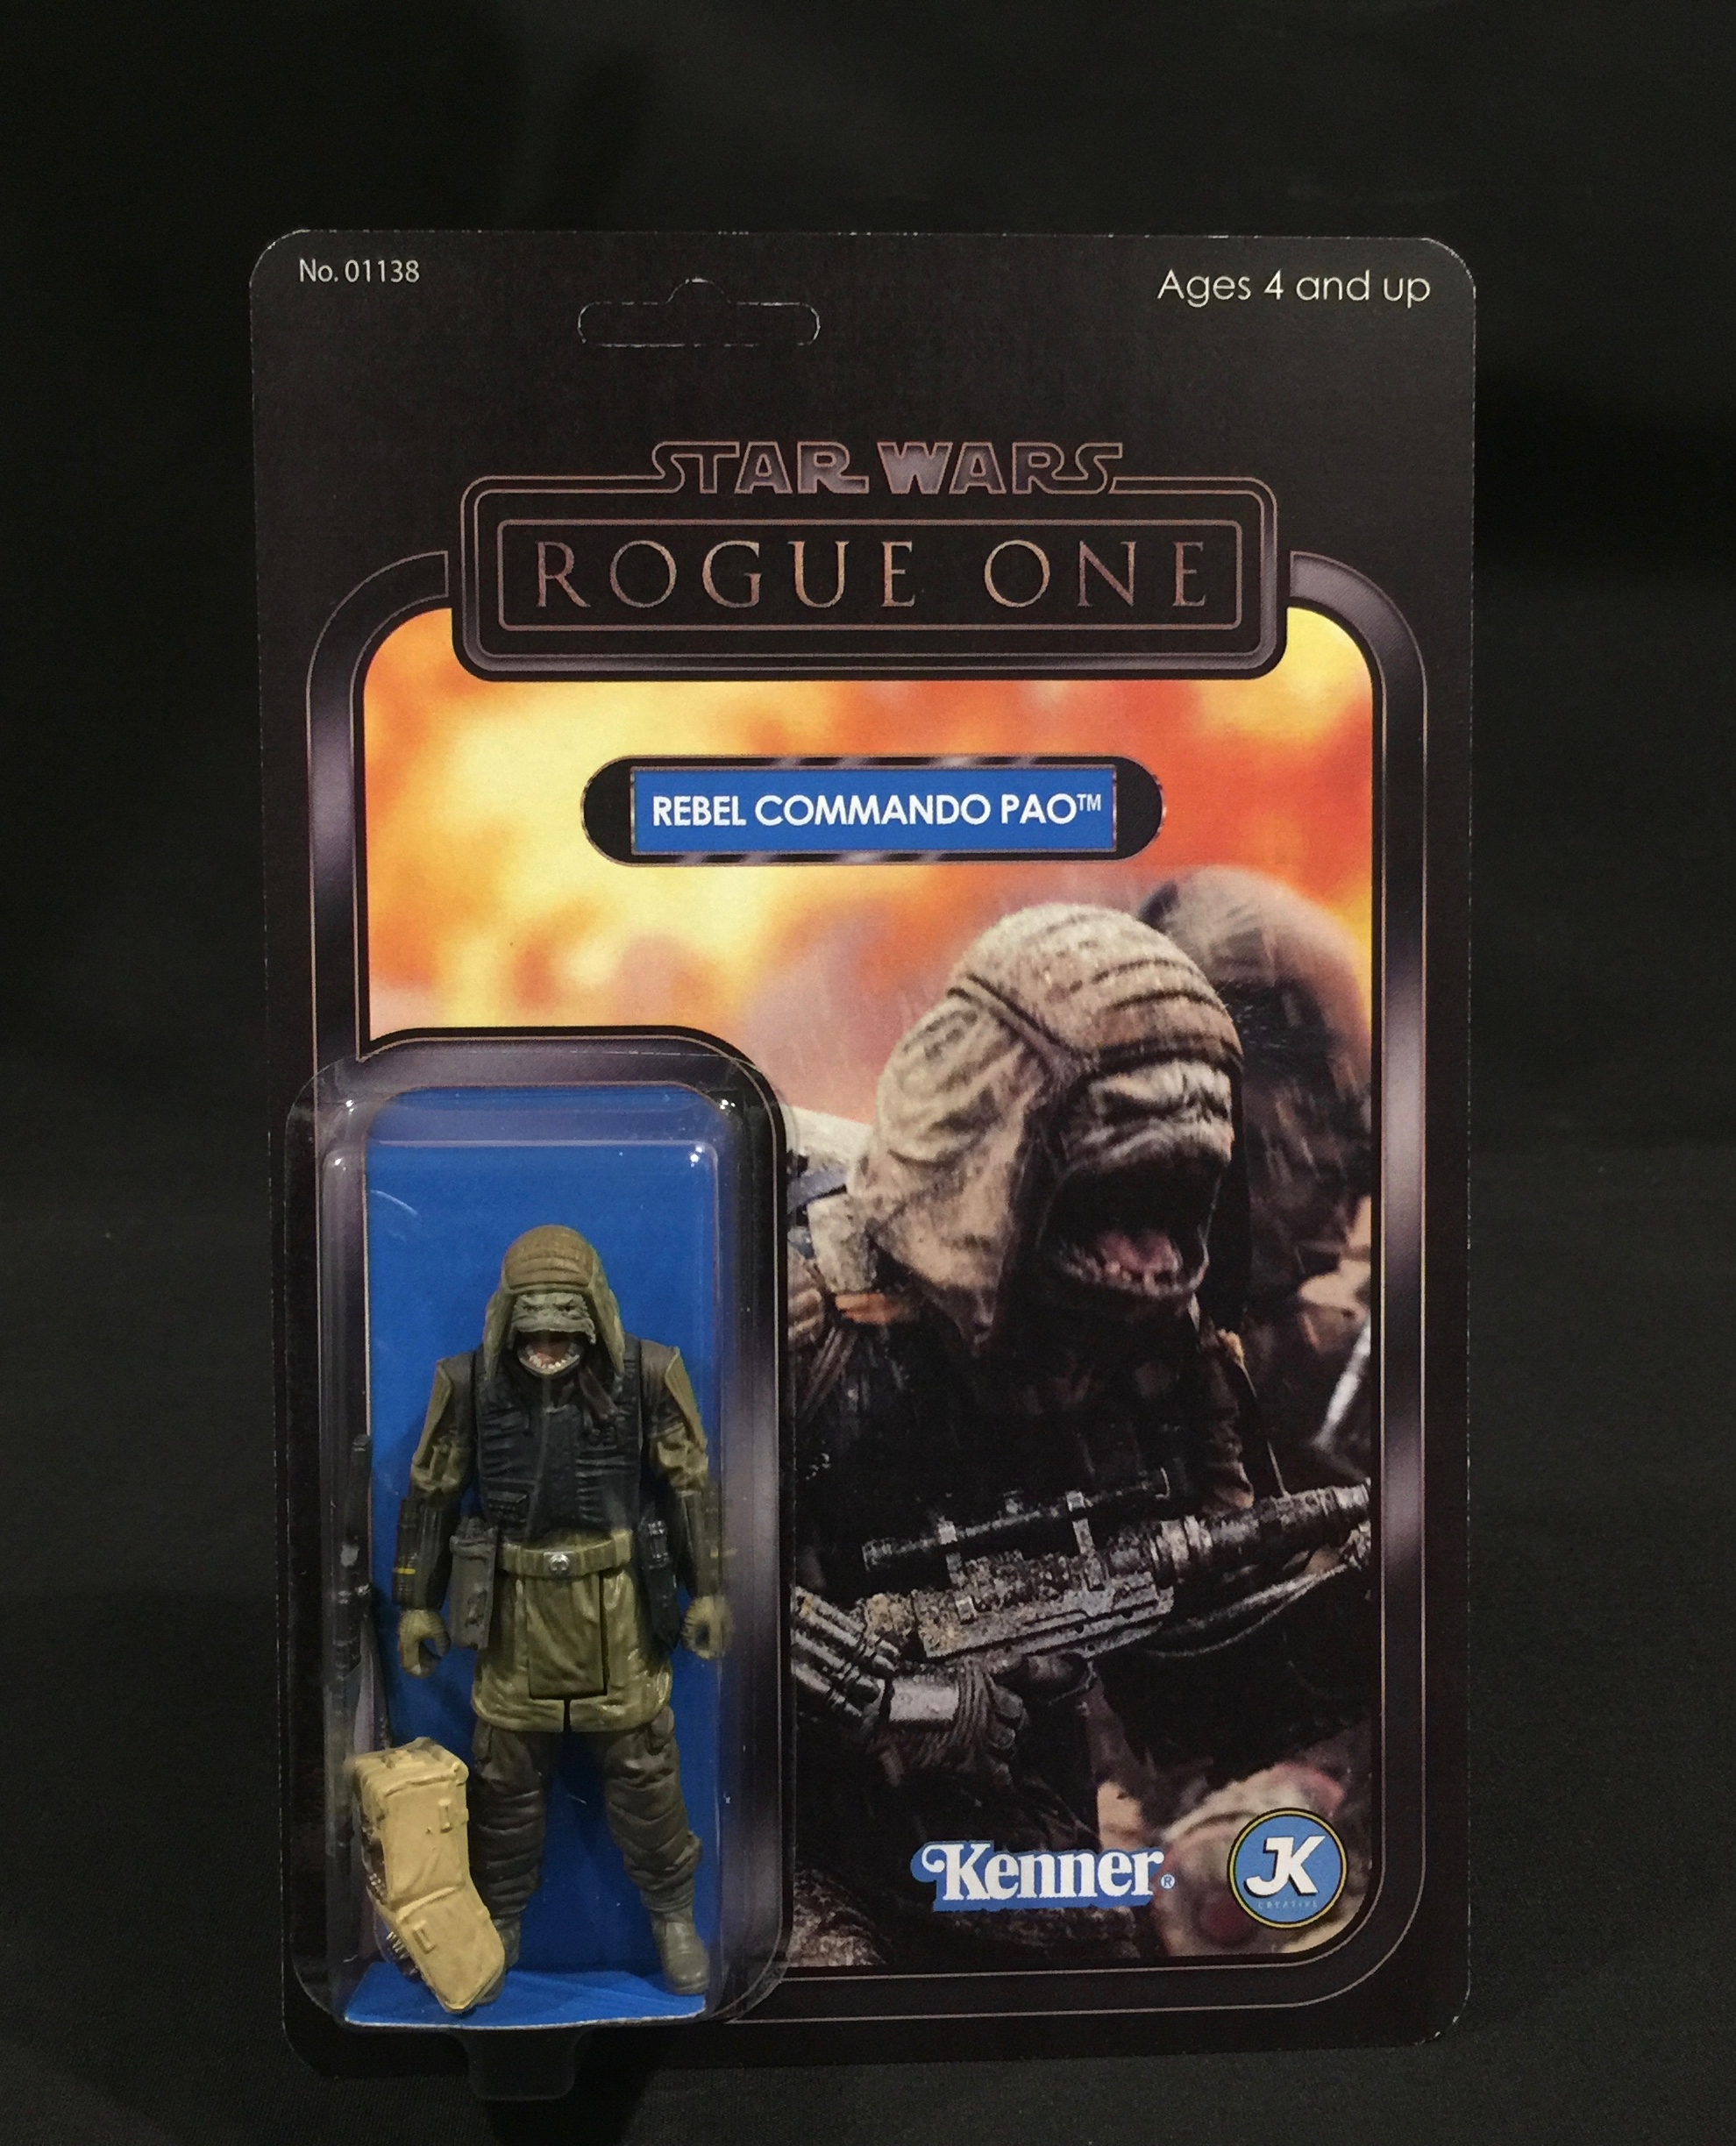 Rebel Commando Pao - Rogue One